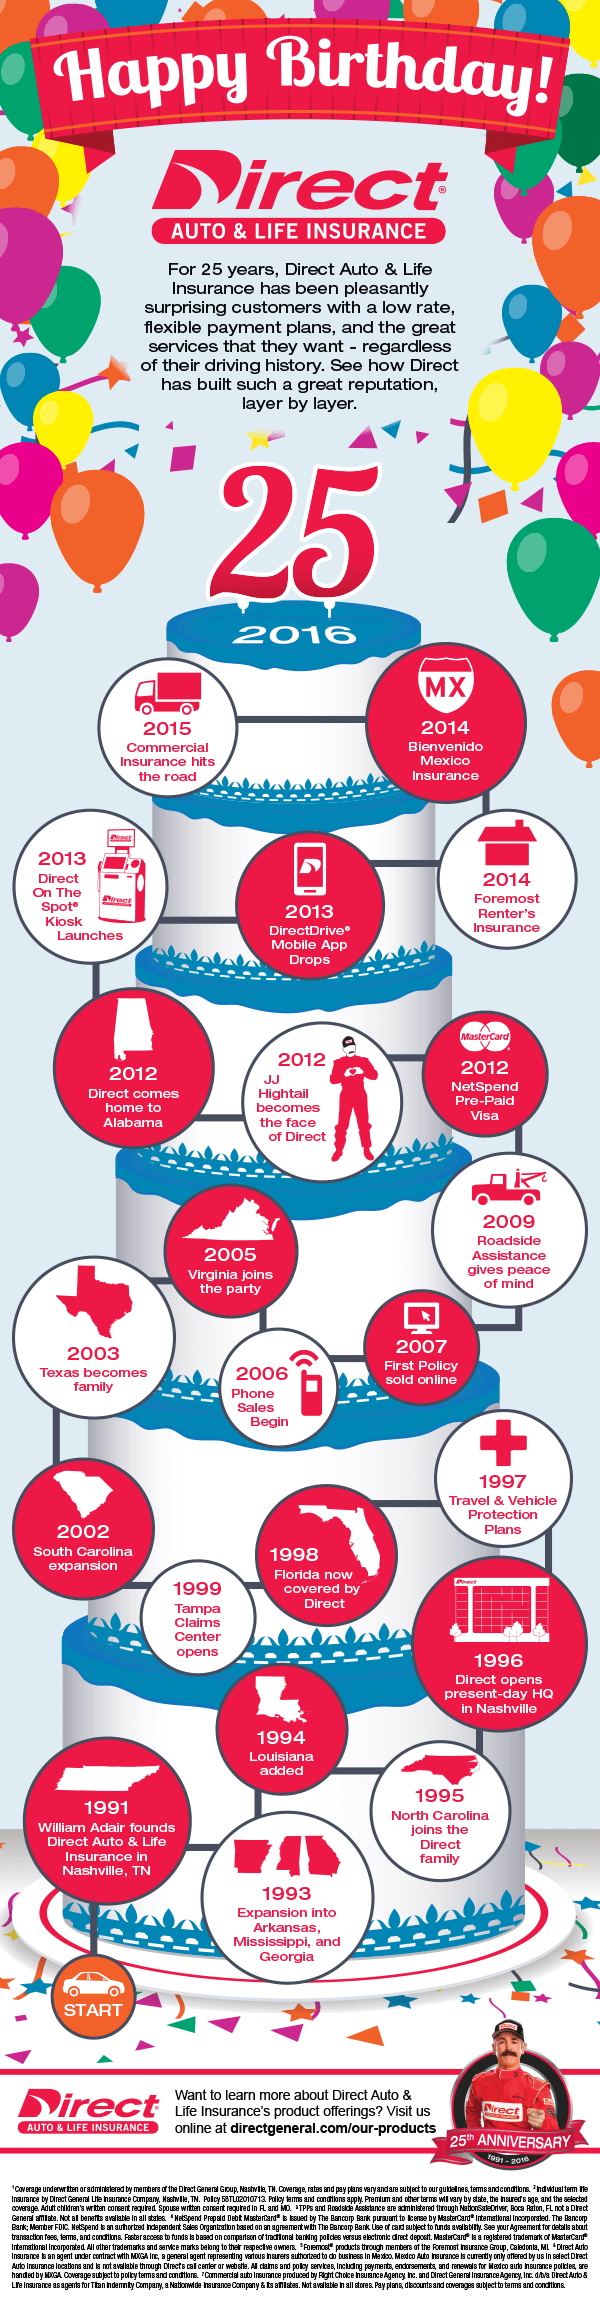 Direct Auto & Life Insurance 25th Birthday Infographic